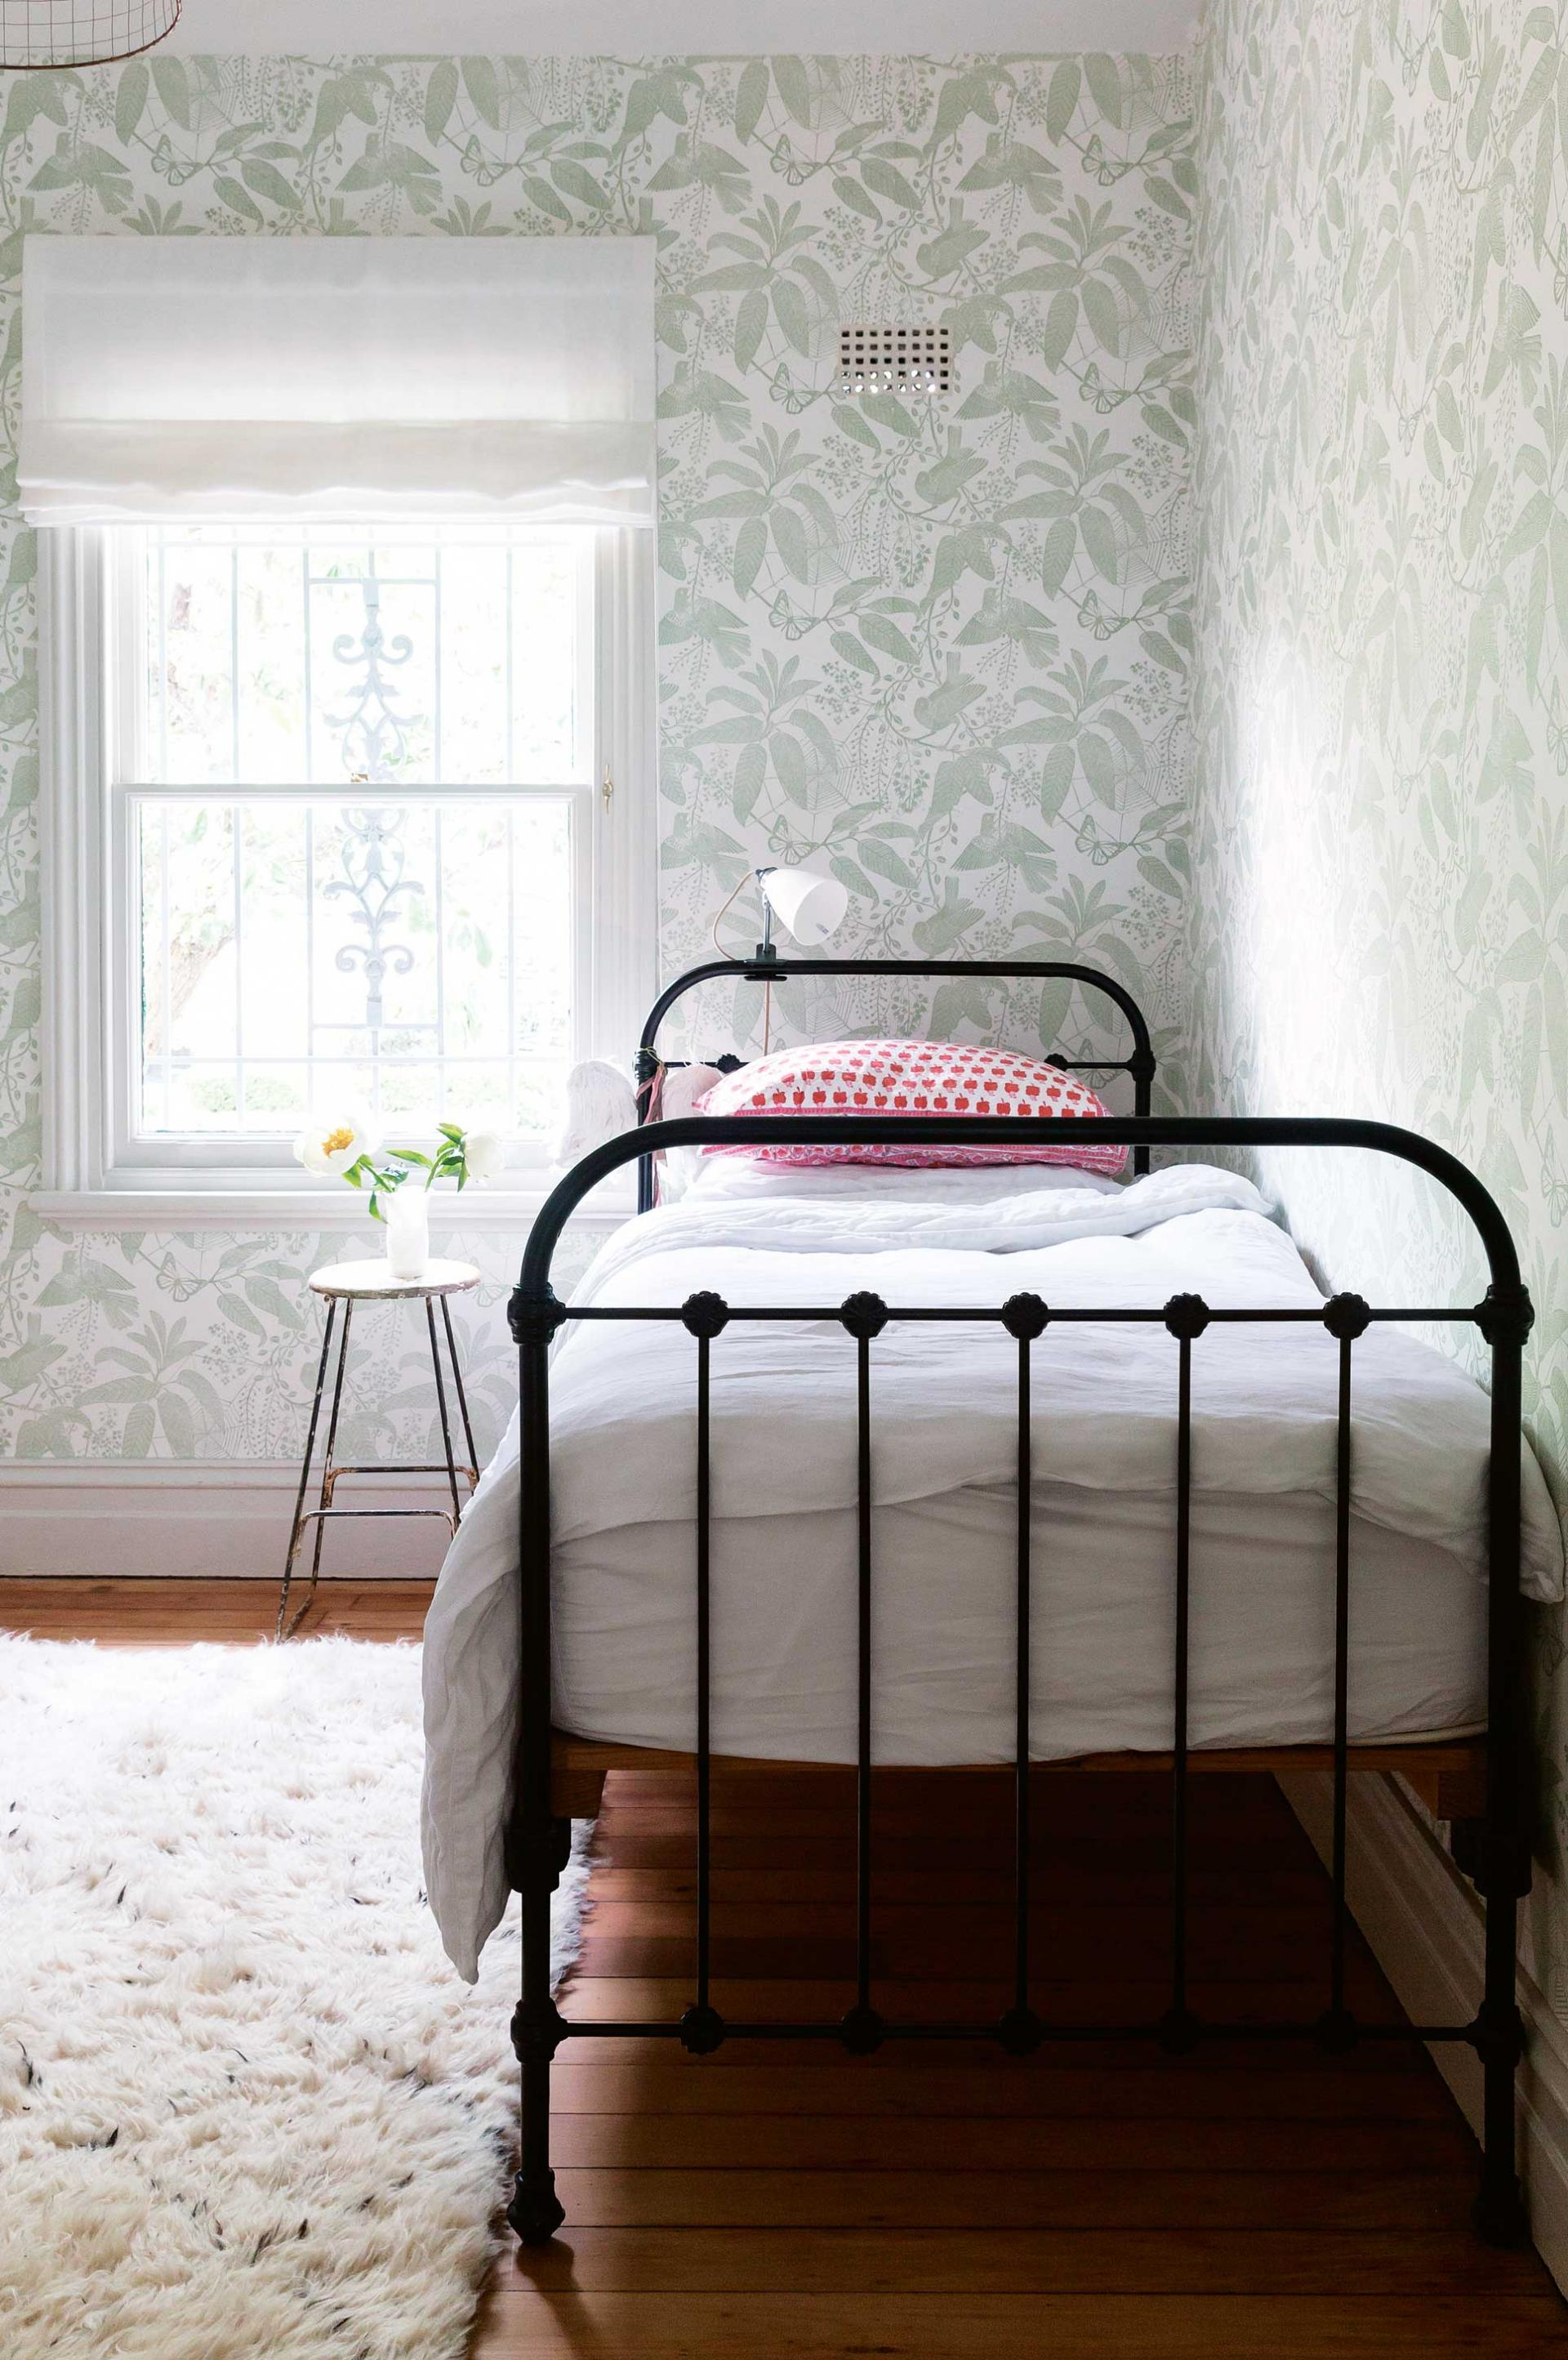 bdabcdfeacf-bird-bedroom-wallpaper-wp5802388-1